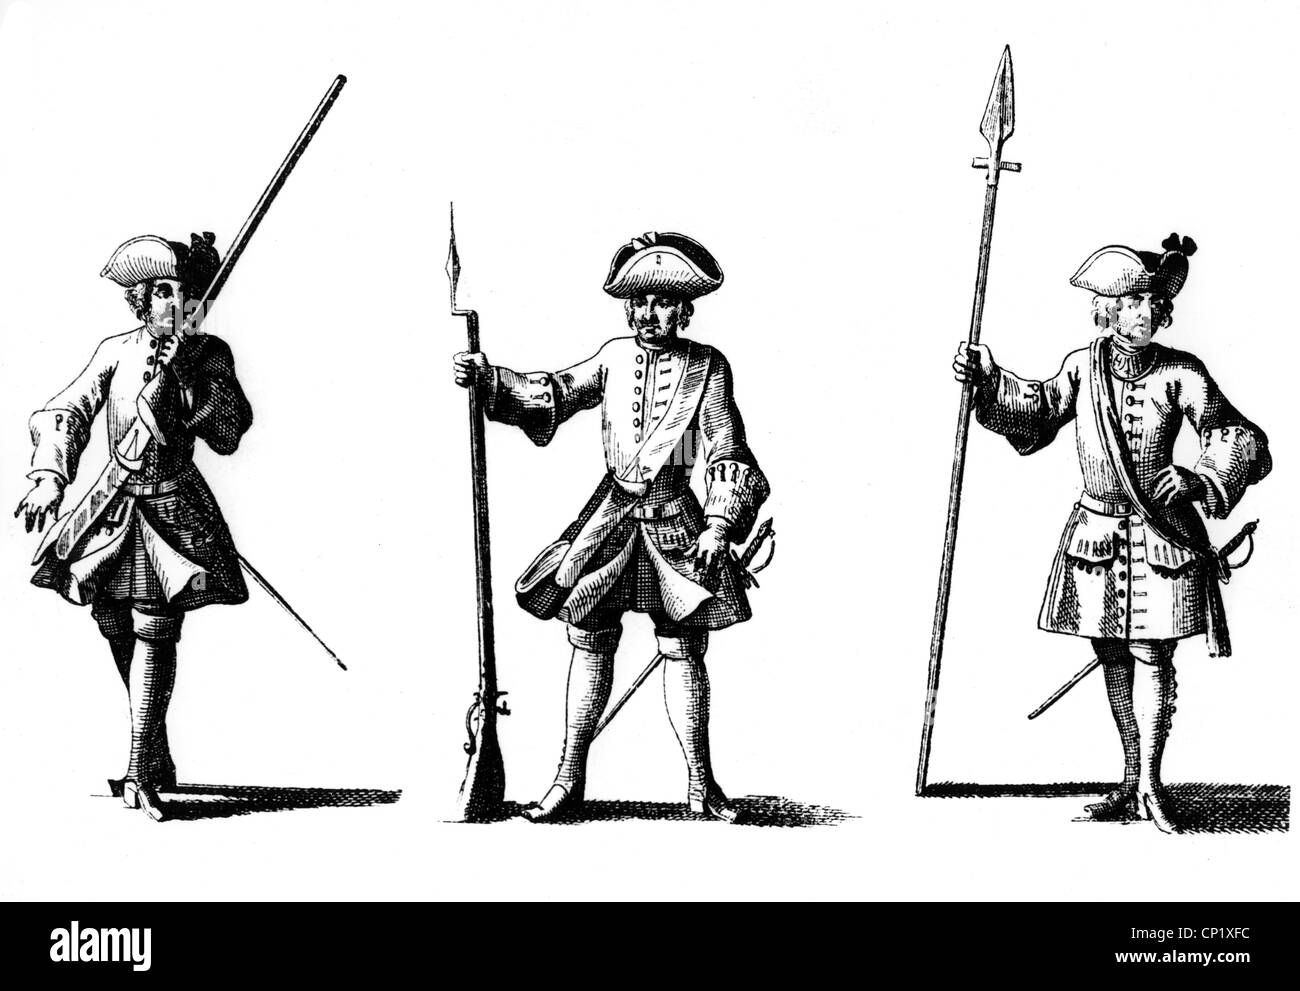 military, Germany, Saxony, infantrymen, early 18th century, illustration from 'Der vollkommene teutsche Soldat', - Stock Image